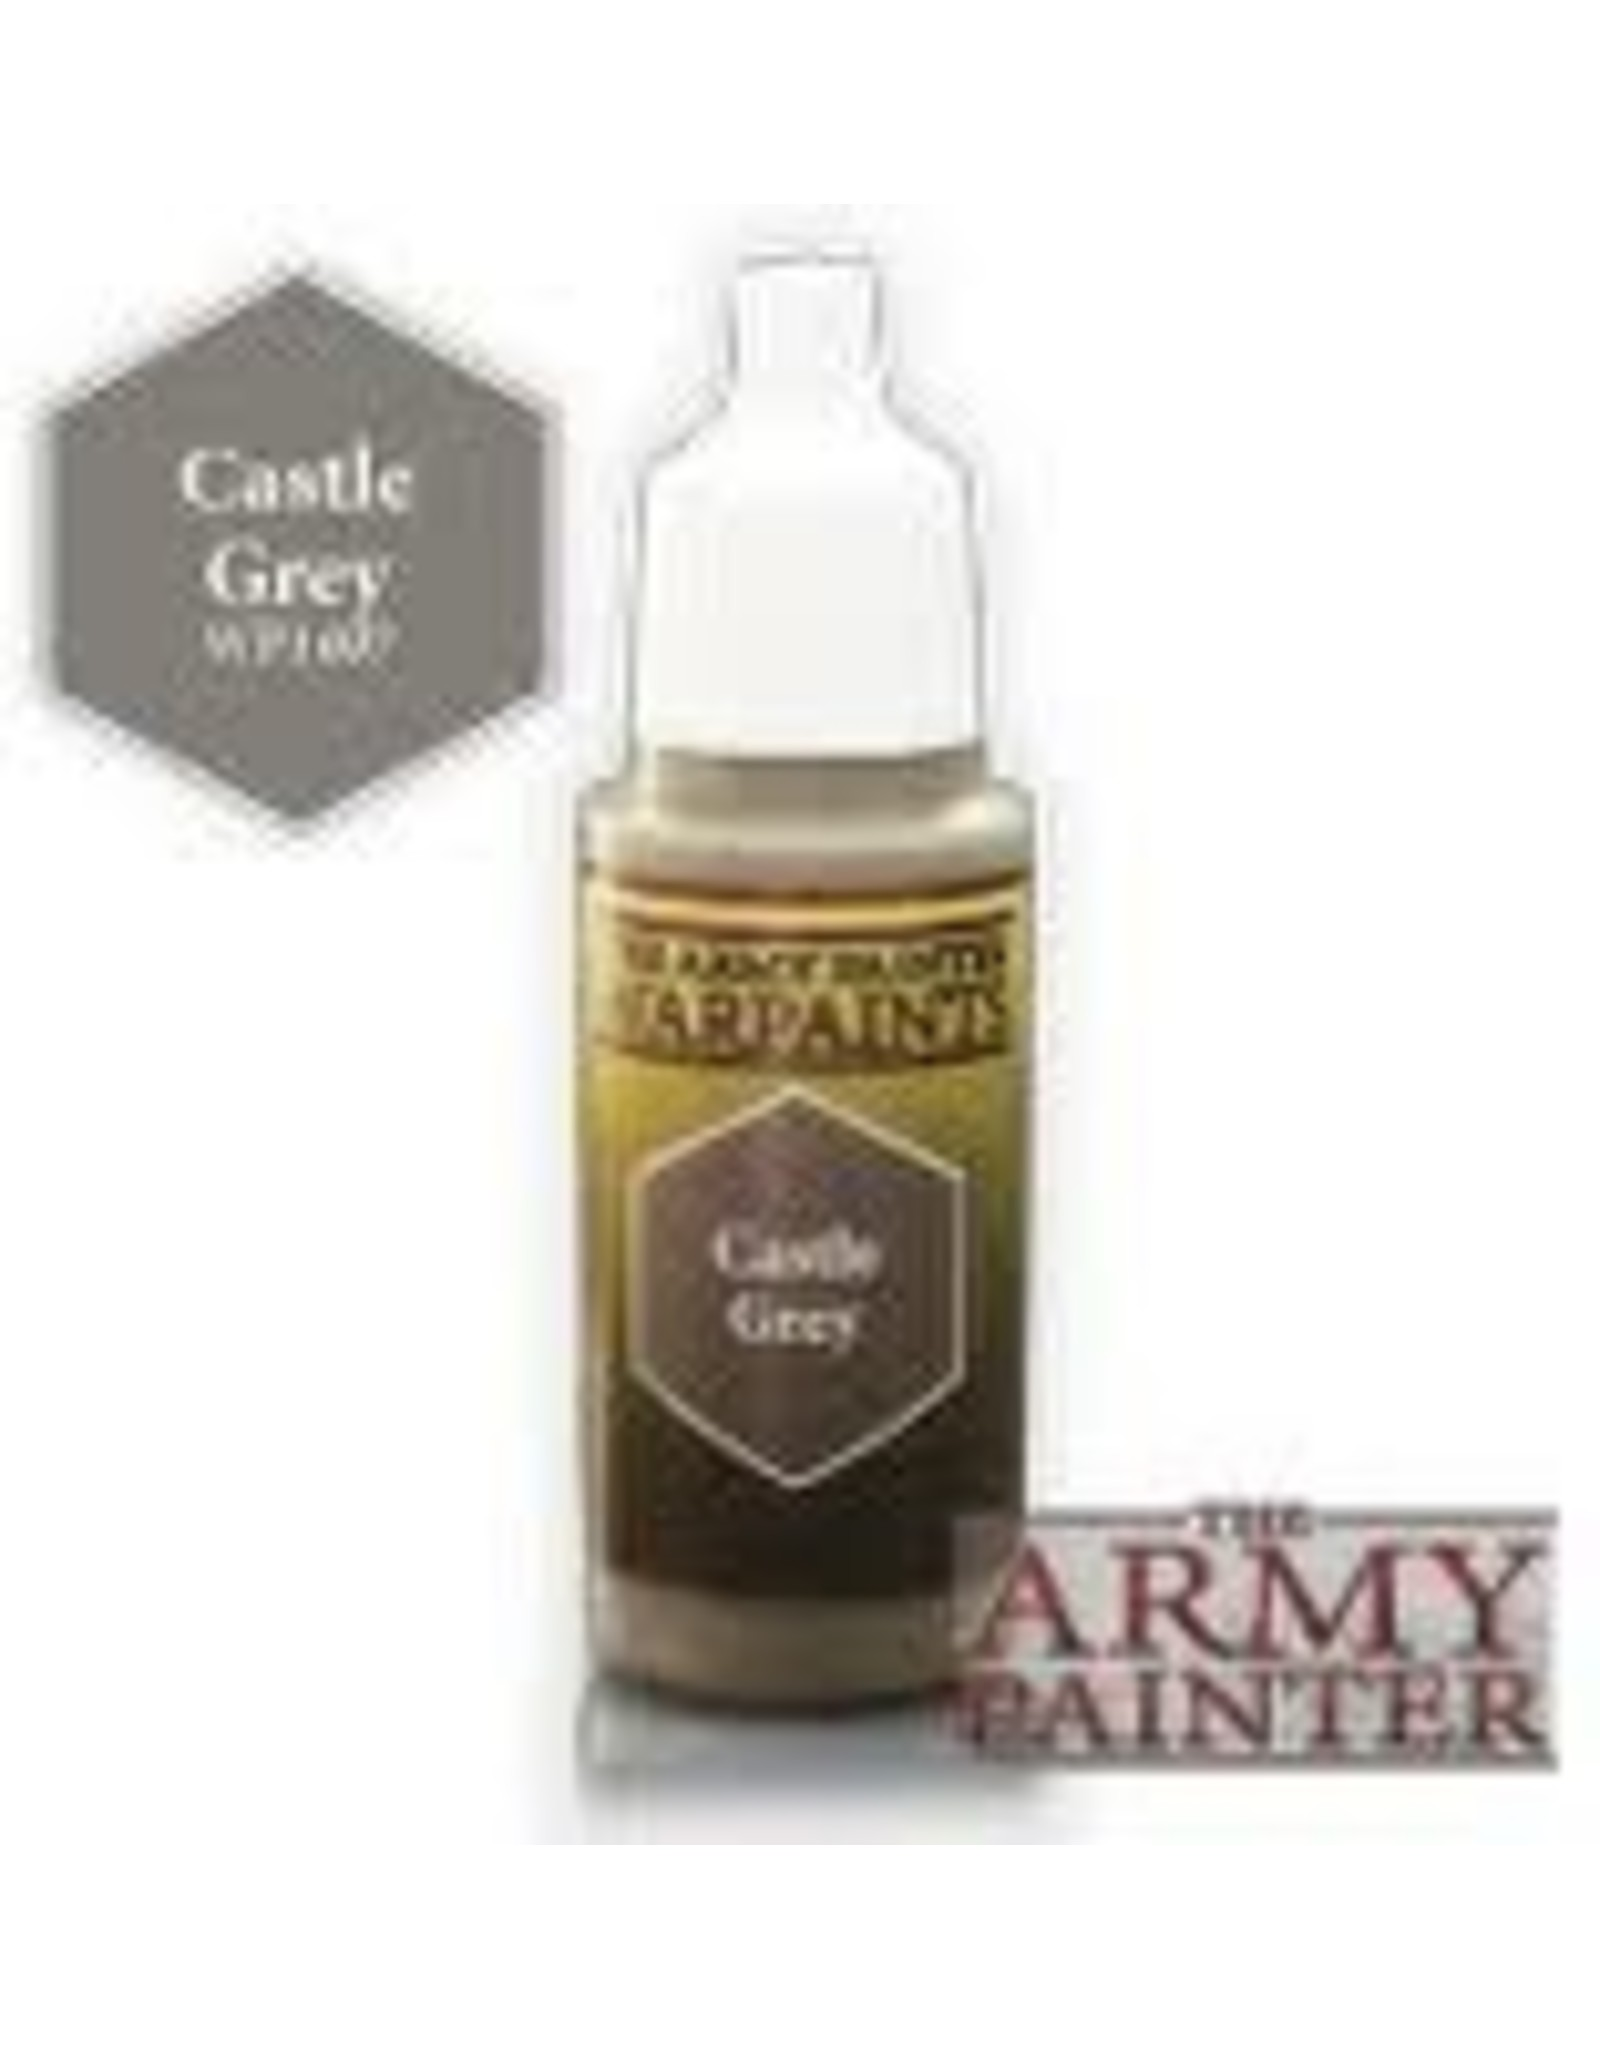 Army Painter Army Painter: Castle Grey